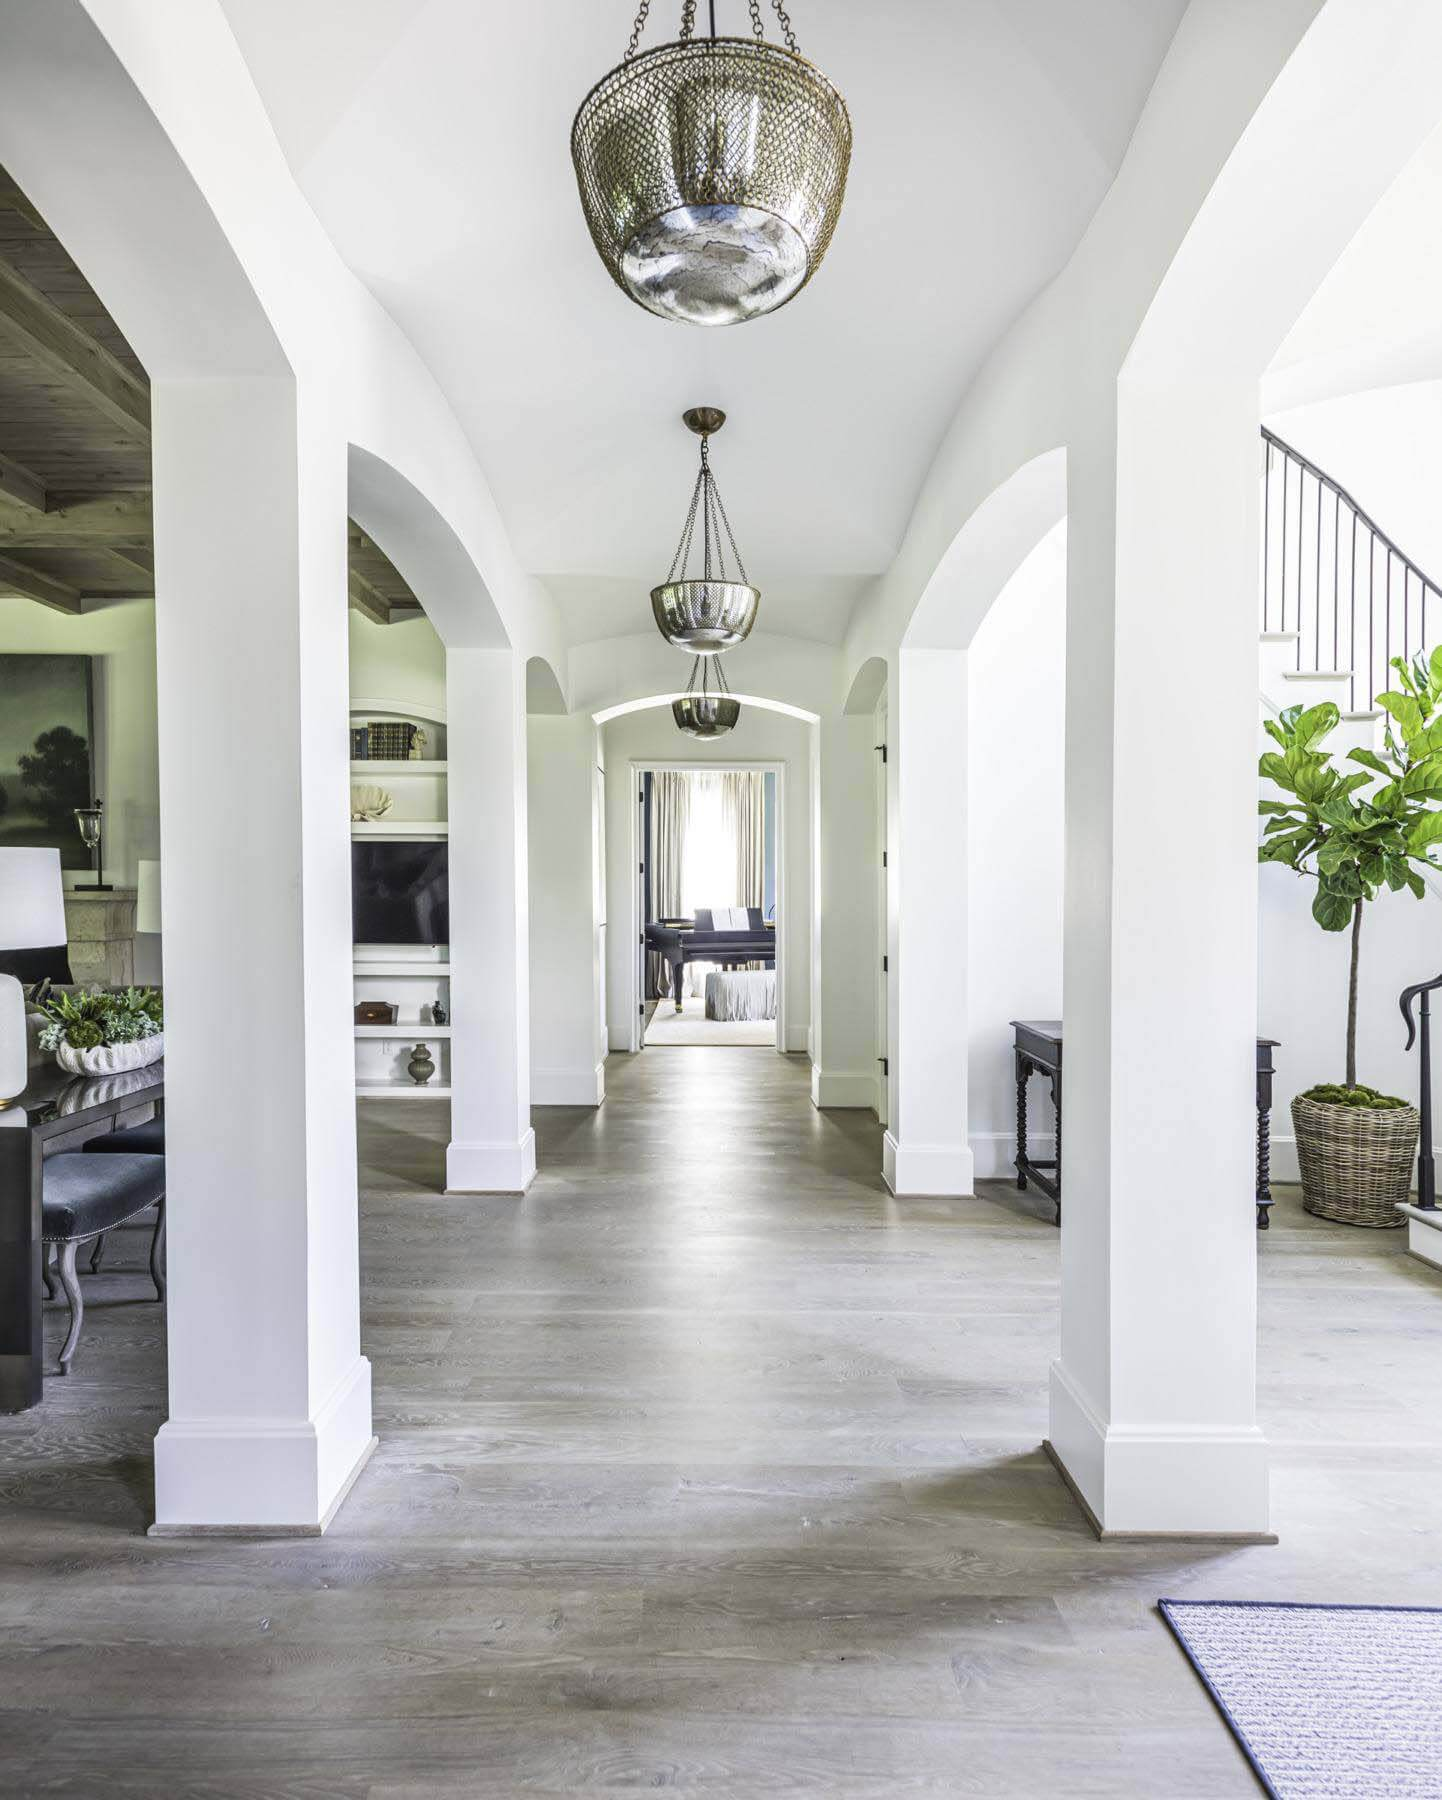 open floor plan by Castle Homes, with hallway and stairwell